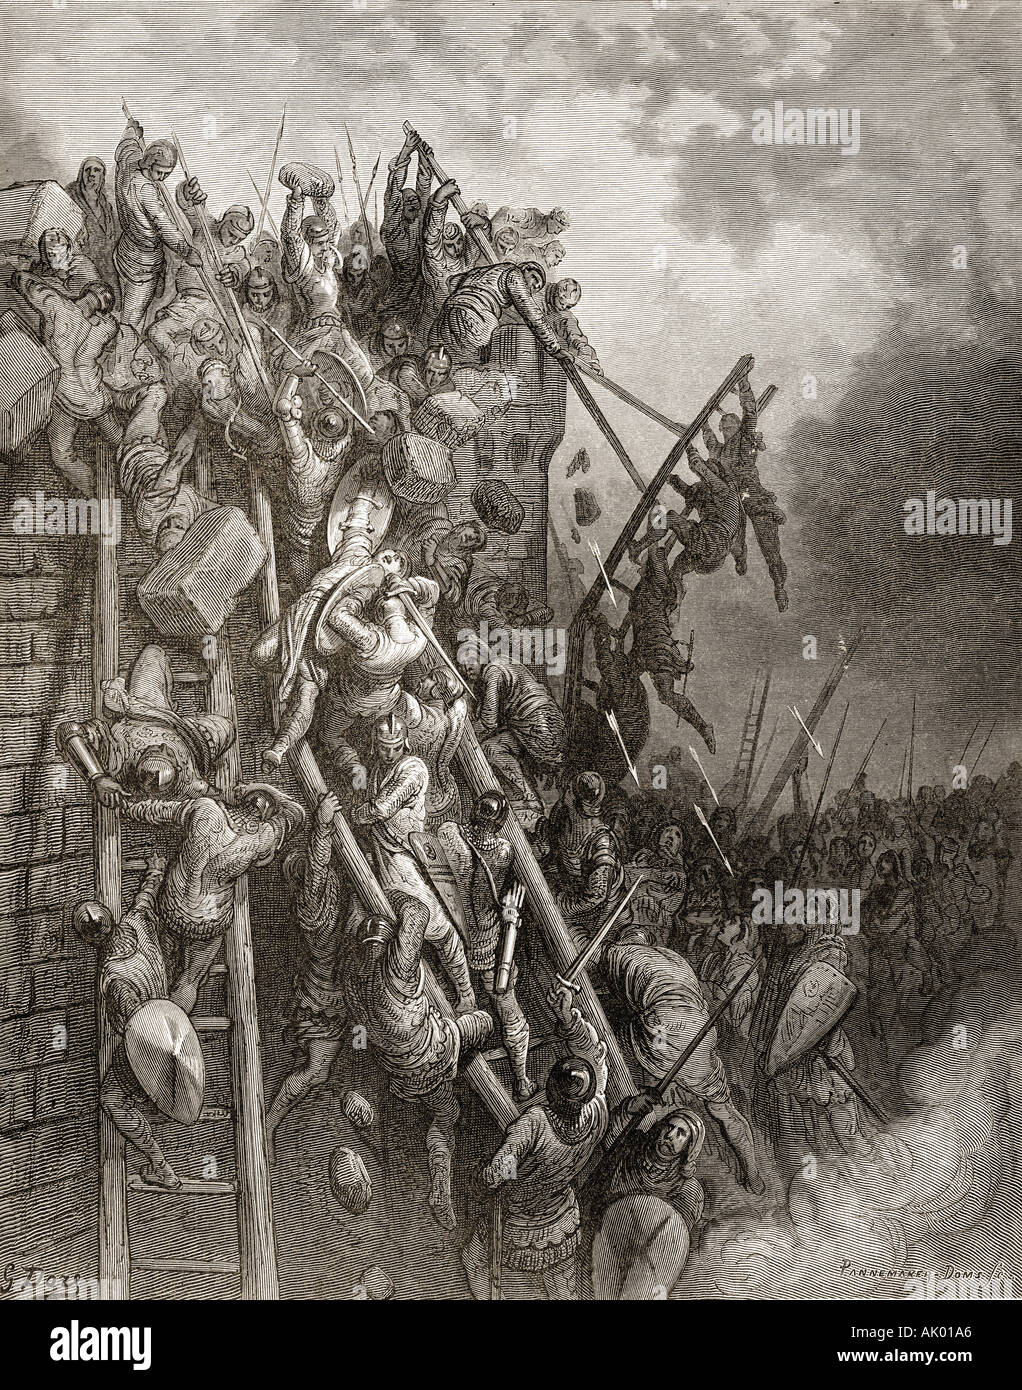 The army of Priest Volkmar and Count Emicio aka Count Emich of Leisingen, attack Merseburg. - Stock Image